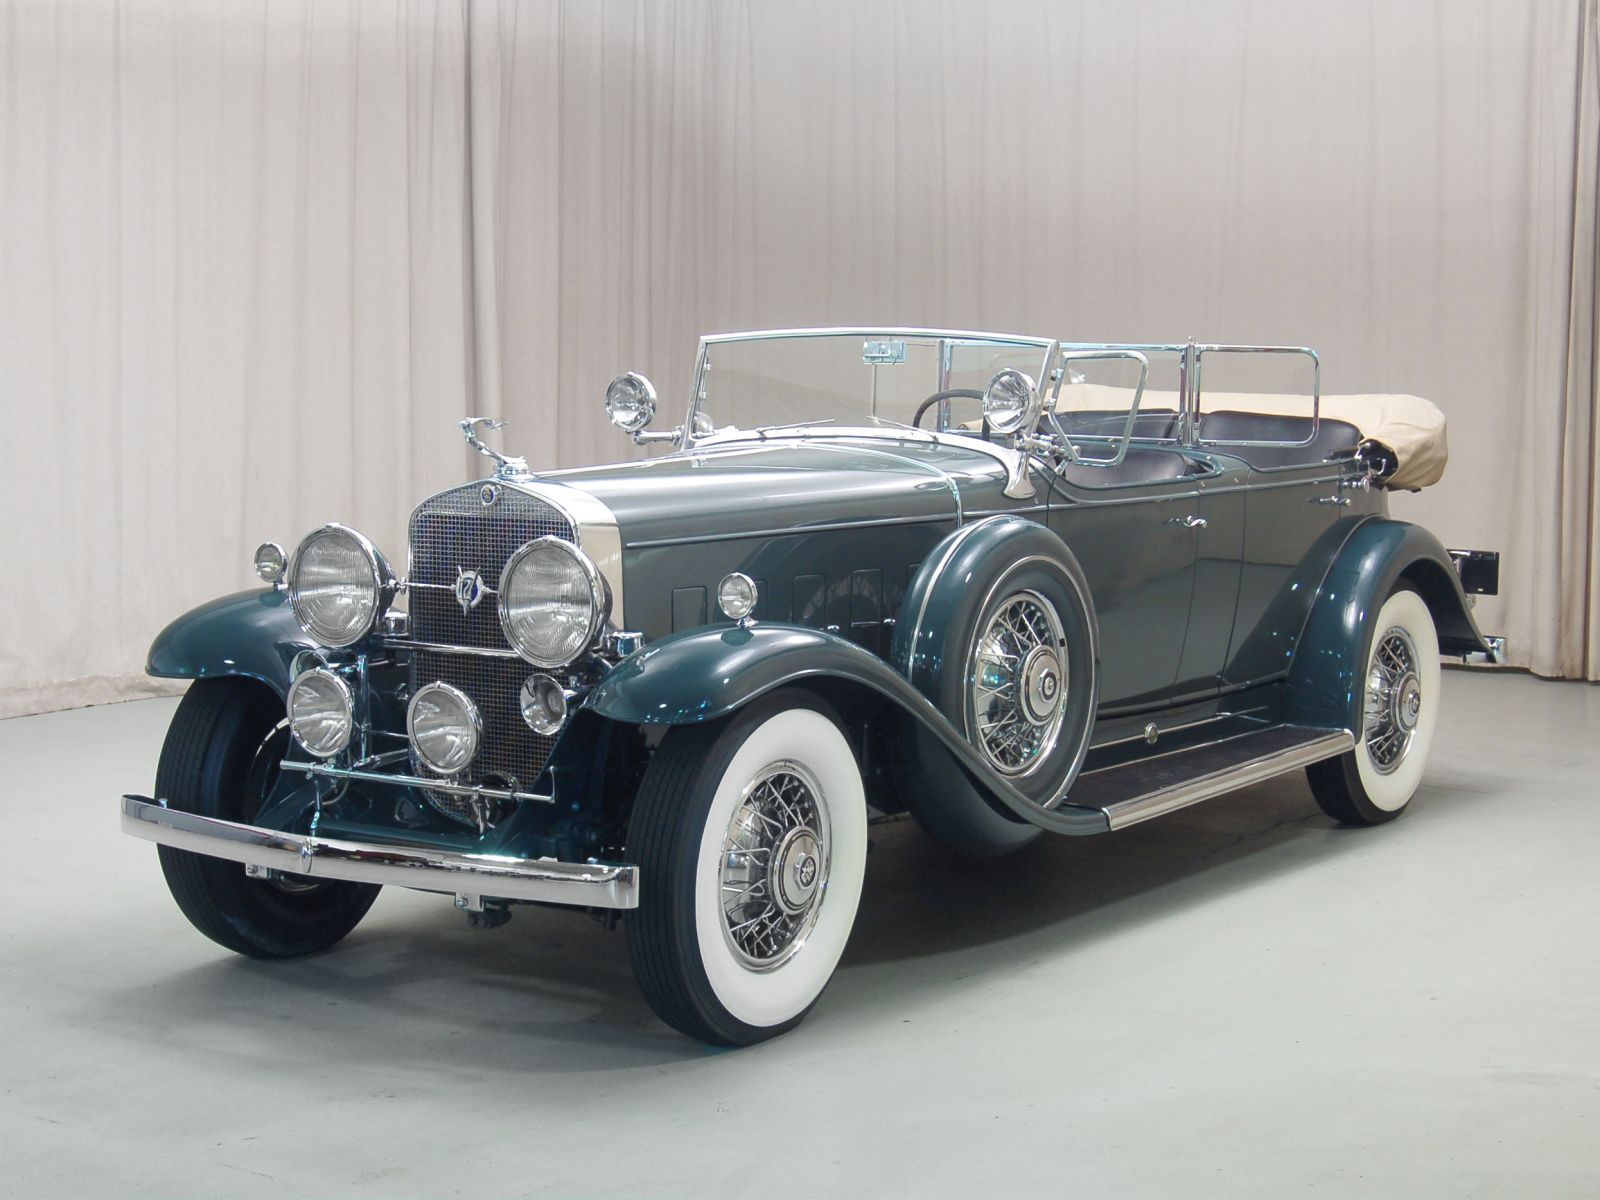 1931 Cadillac V12 High Quality Background on Wallpapers Vista